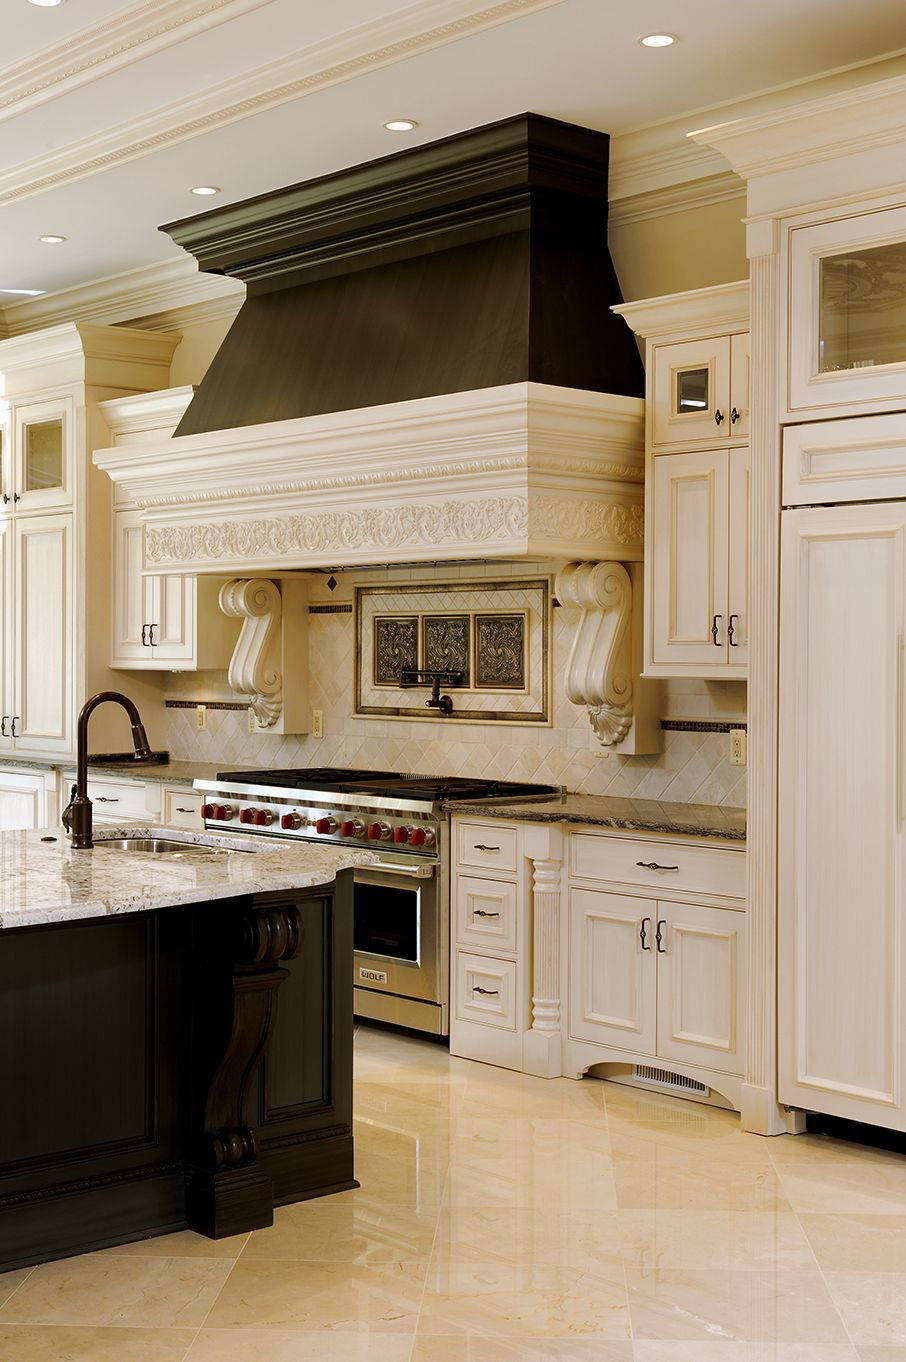 cabinets that look like furniture like the range the feature at the bottom of the cabinets